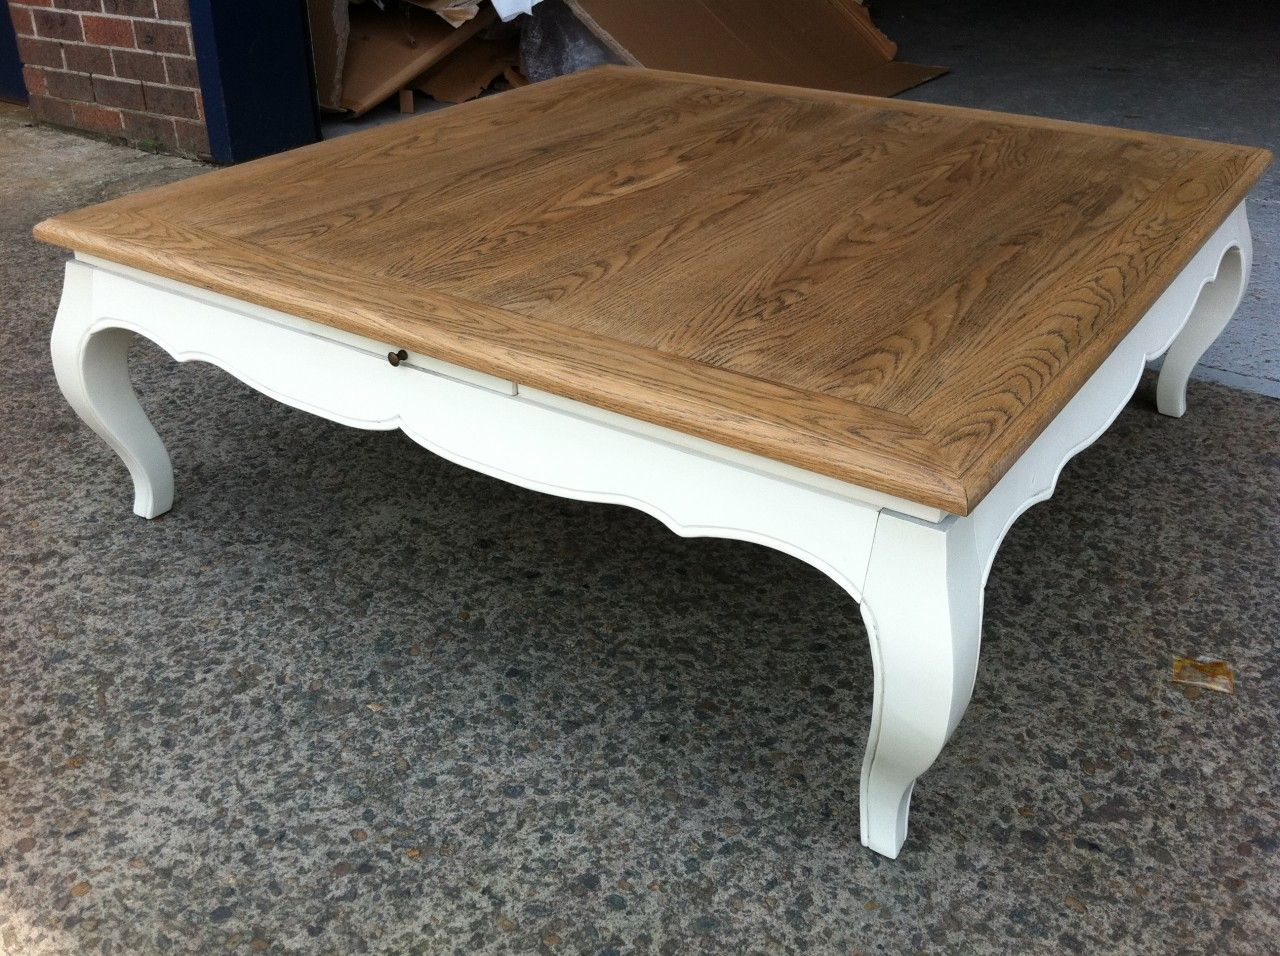 NEW FRENCH PROVINCIAL COUNTRY VINTAGE SQUARE COFFEE OAK TABLE CHIC